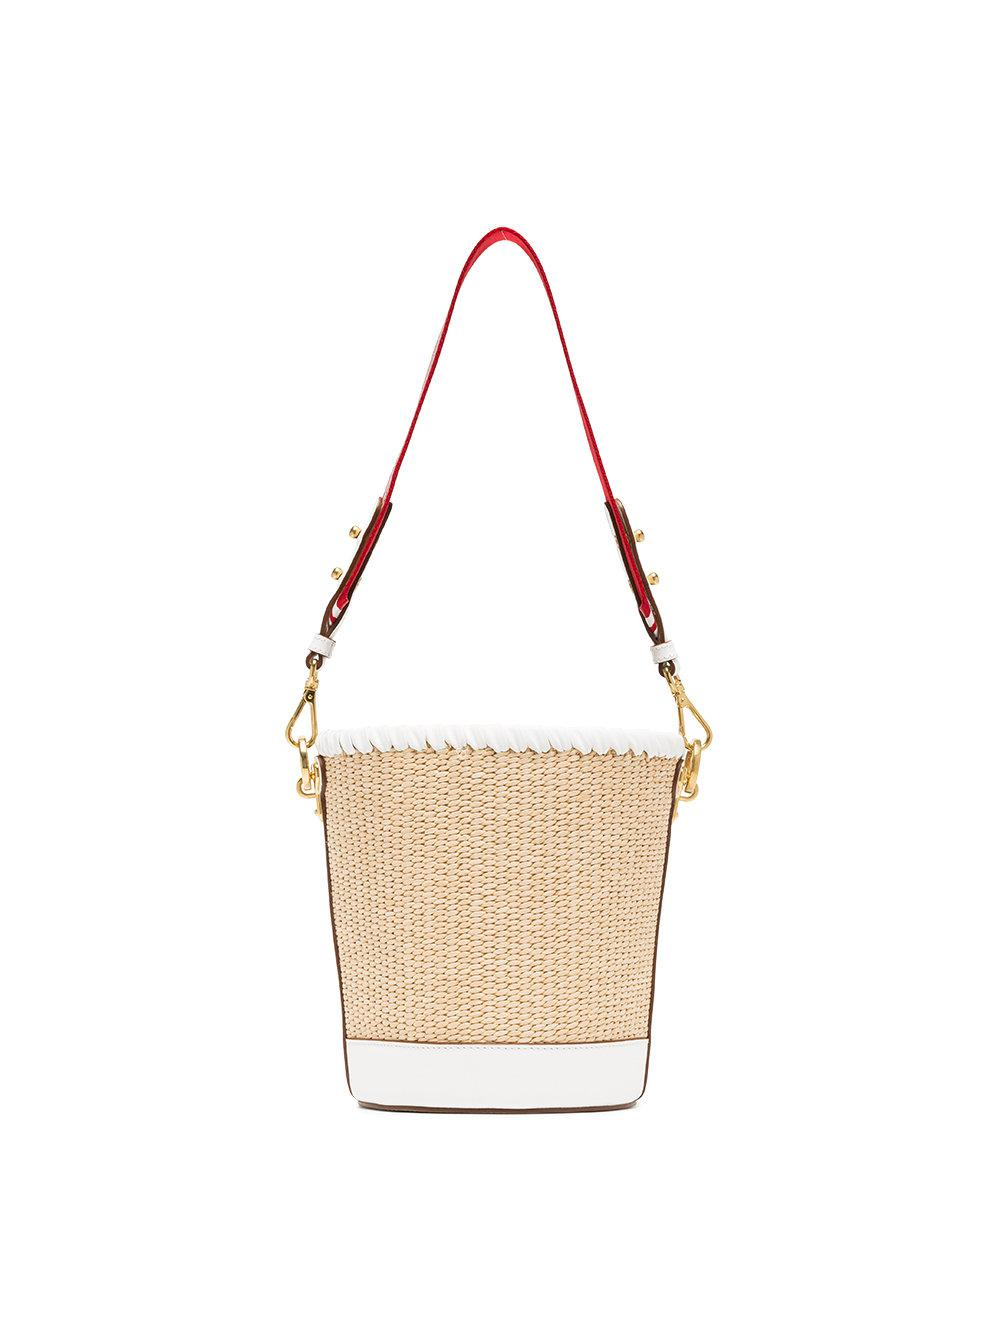 539c4da4616f ... denmark coupon code lyst prada white nude and red logo raffia bucket bag  in natural 29a35